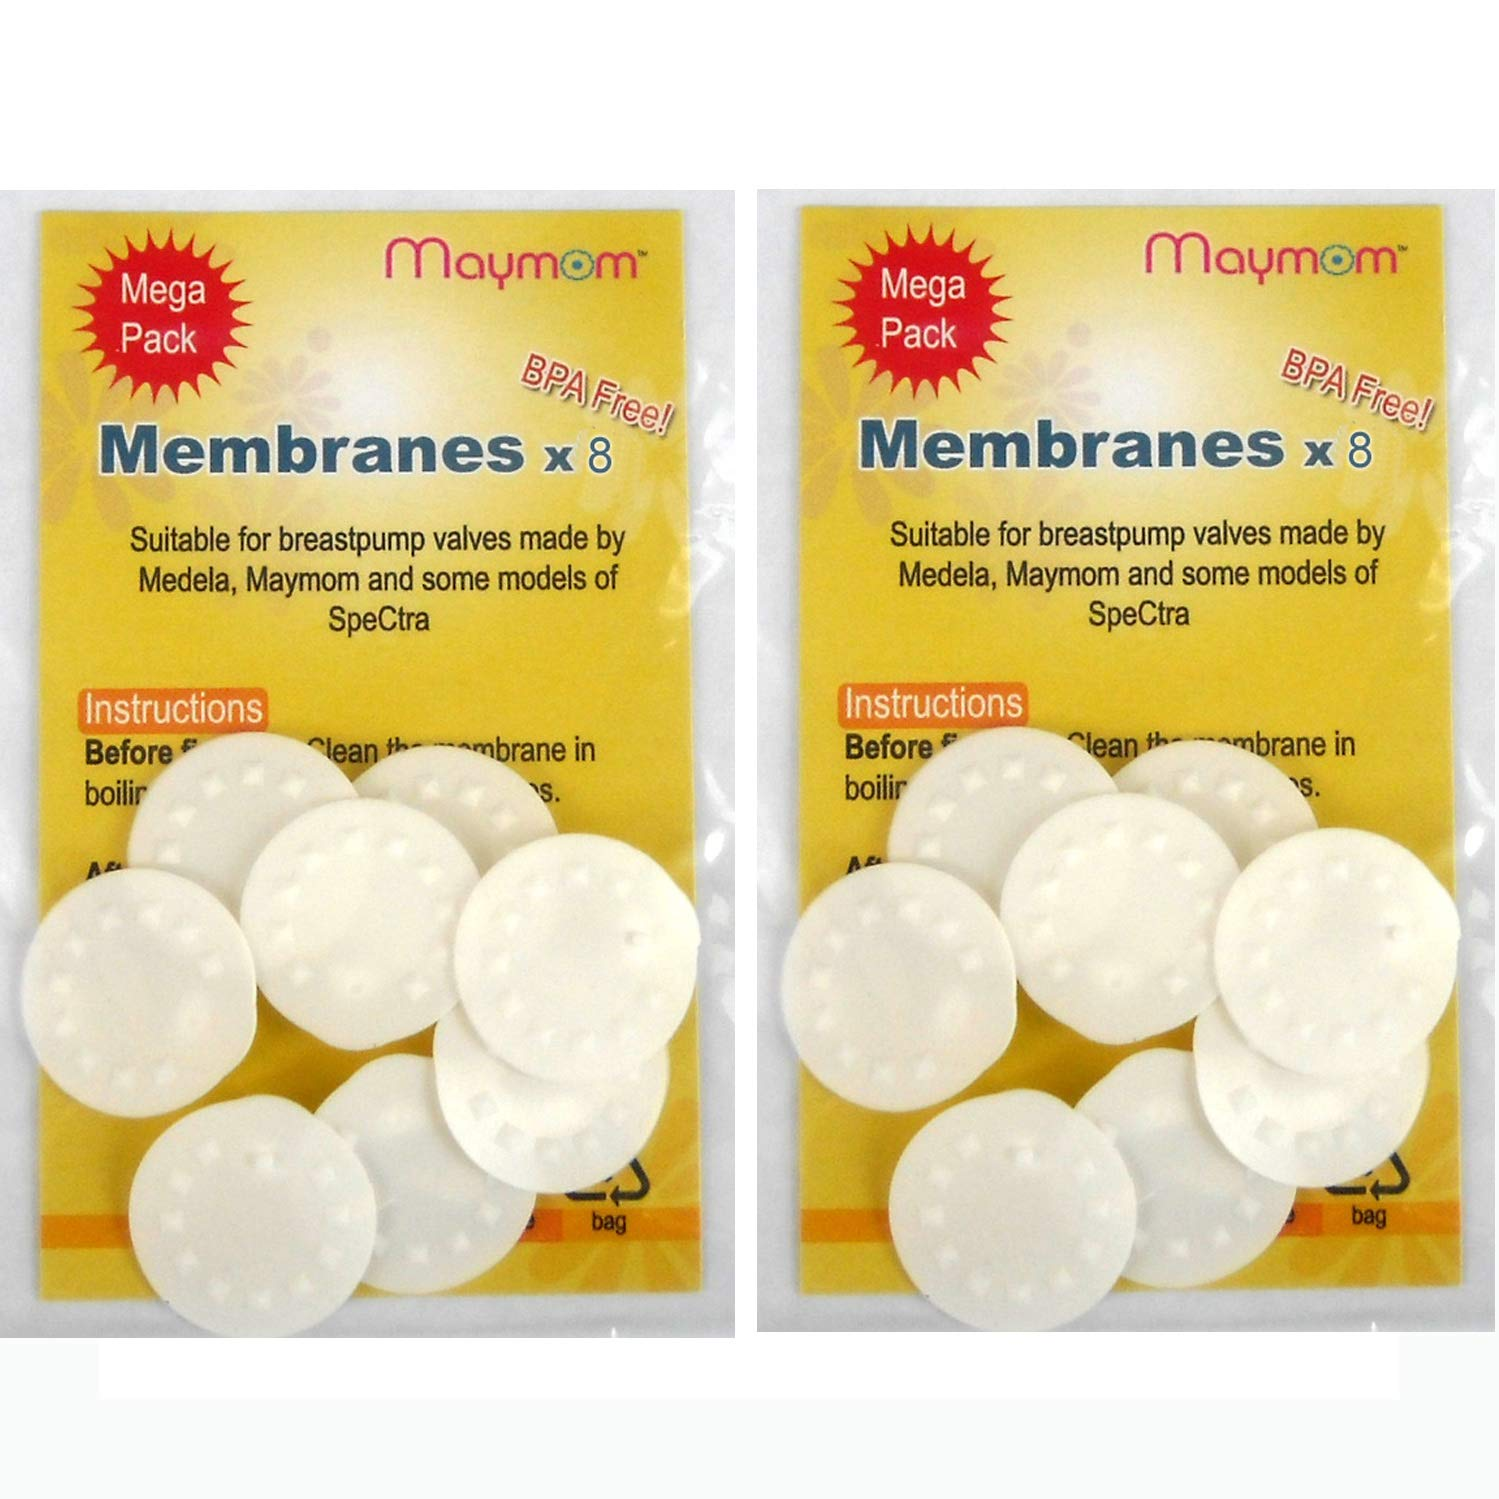 Membranes for Medela Breastpumps, 16pc Value Pack, Suitable for Lactina, Manual Freestyle, Symphony, Swing, Pump in Style Pumps, Part # 87088